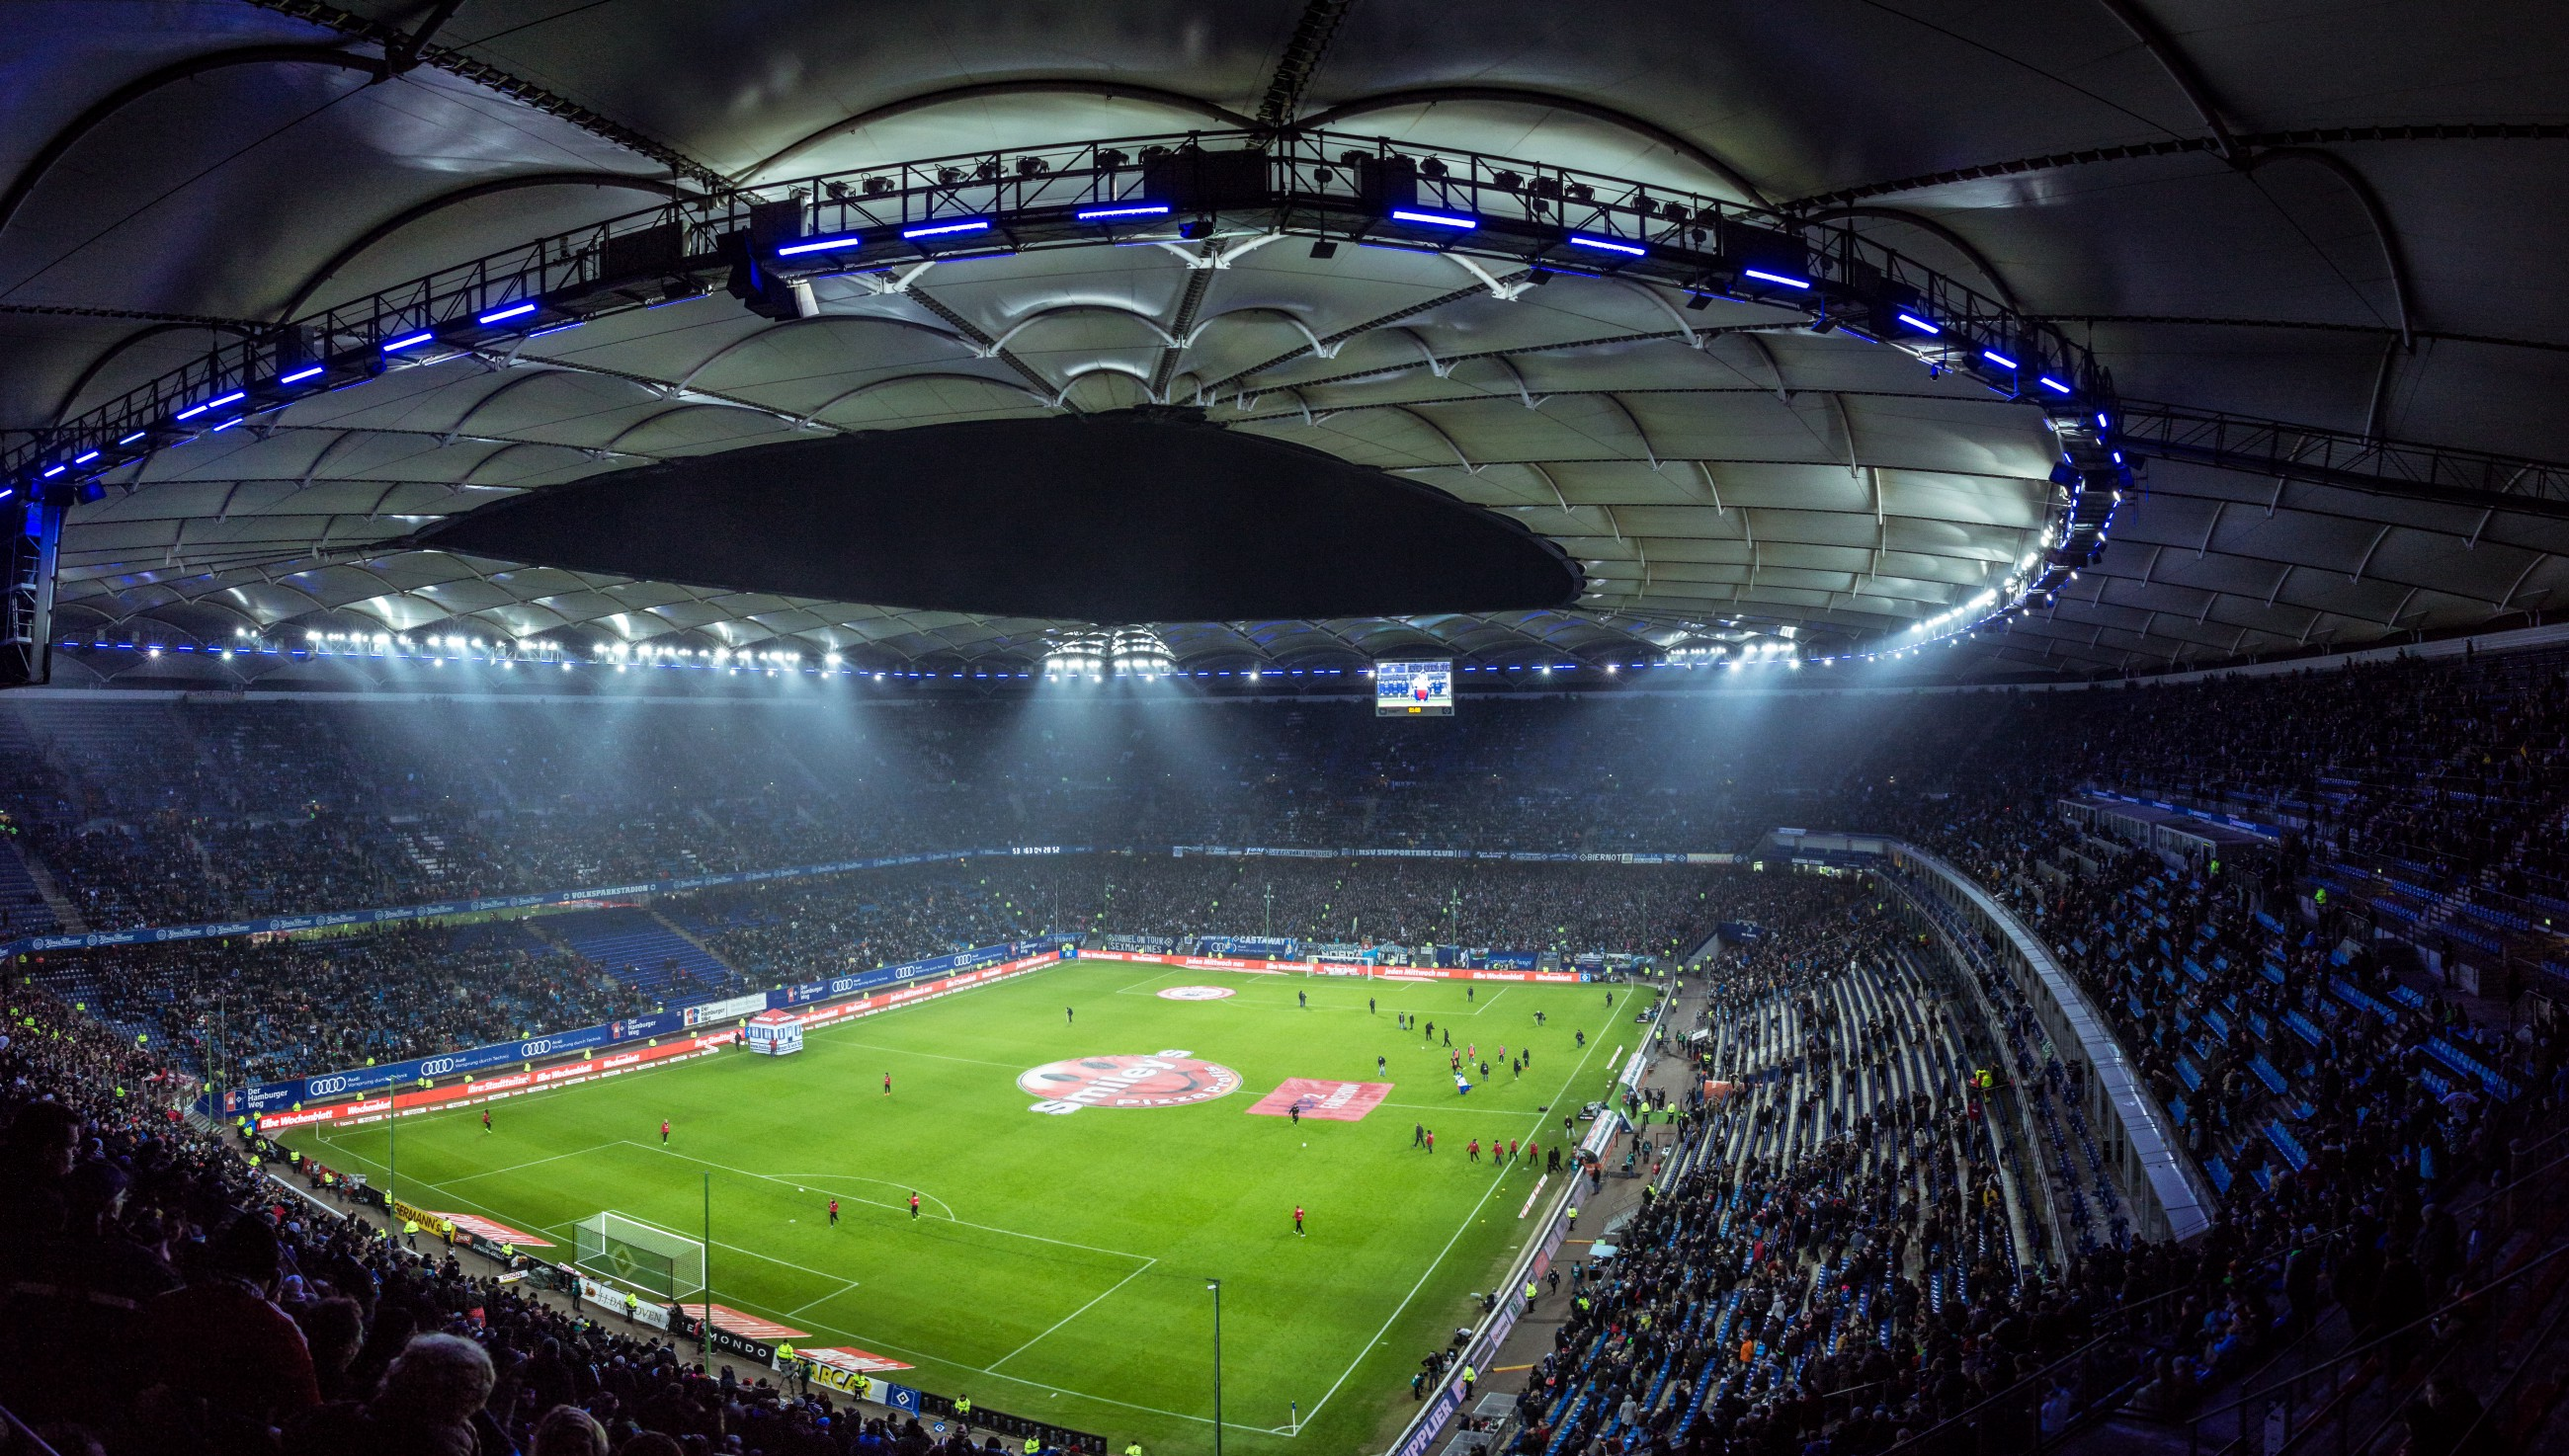 """""""Night view of crowded Volksparkstadion soccer stadium before the match at night"""" by Mario Klassen on Unsplash"""